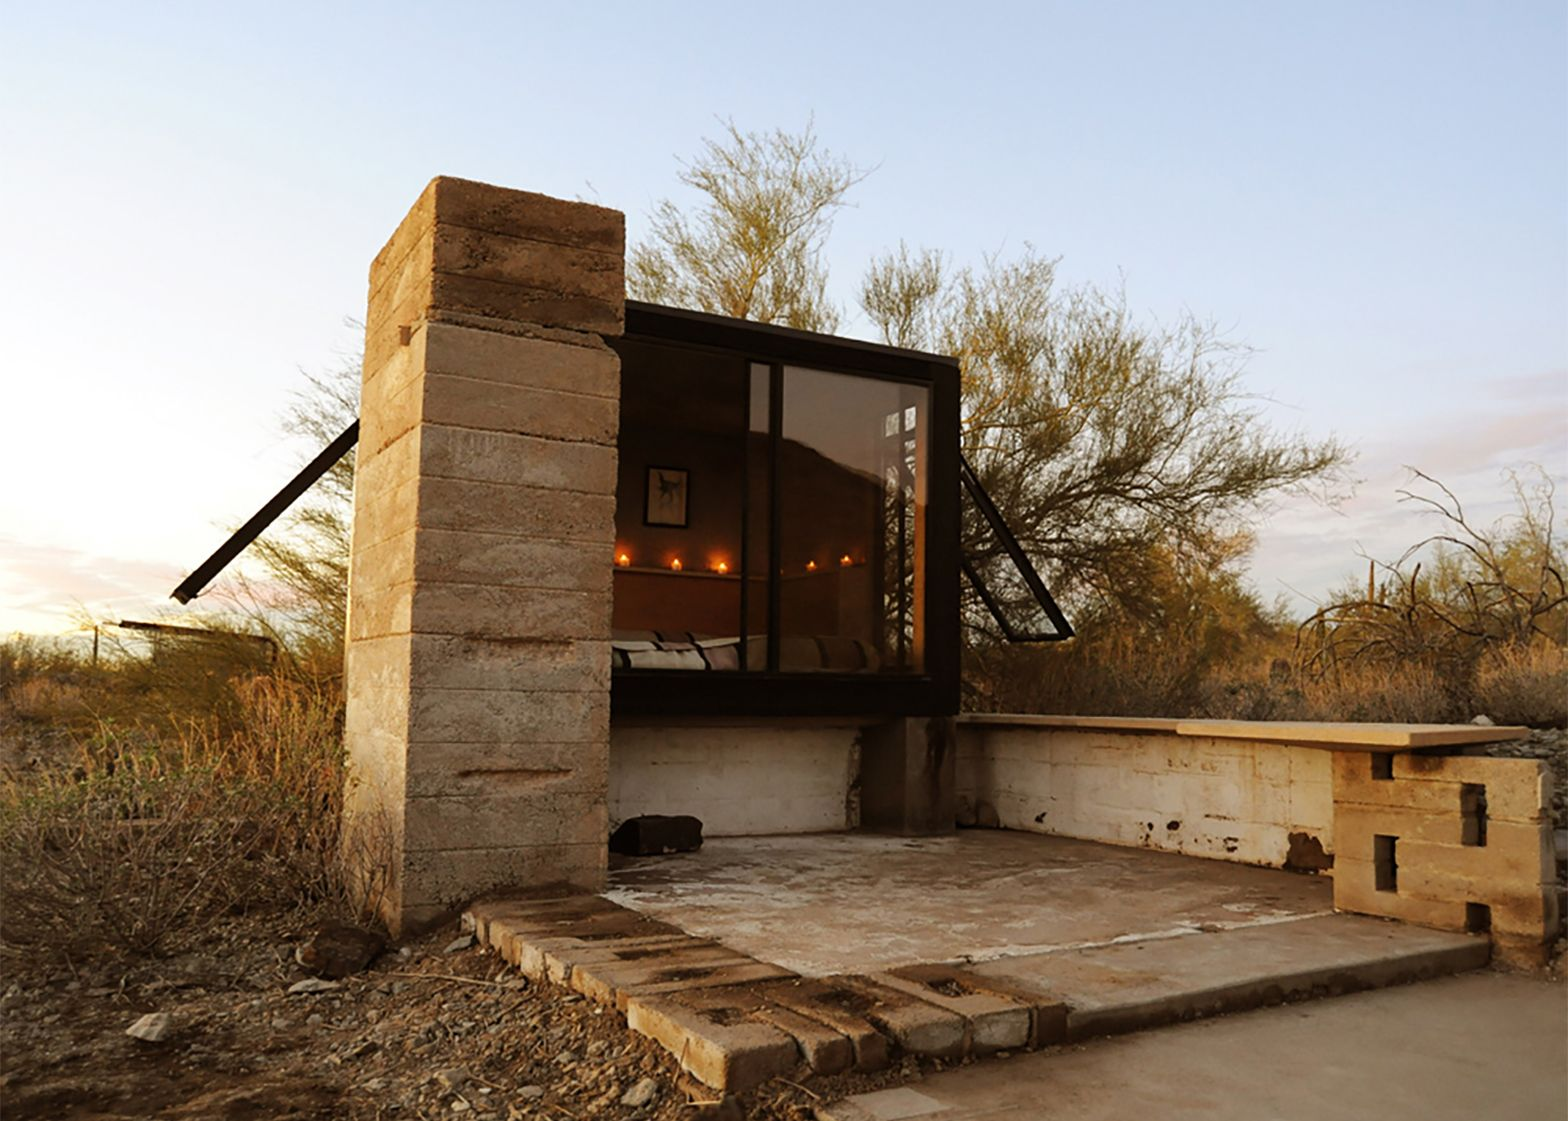 Desert Hideaway by David Frazee (With images